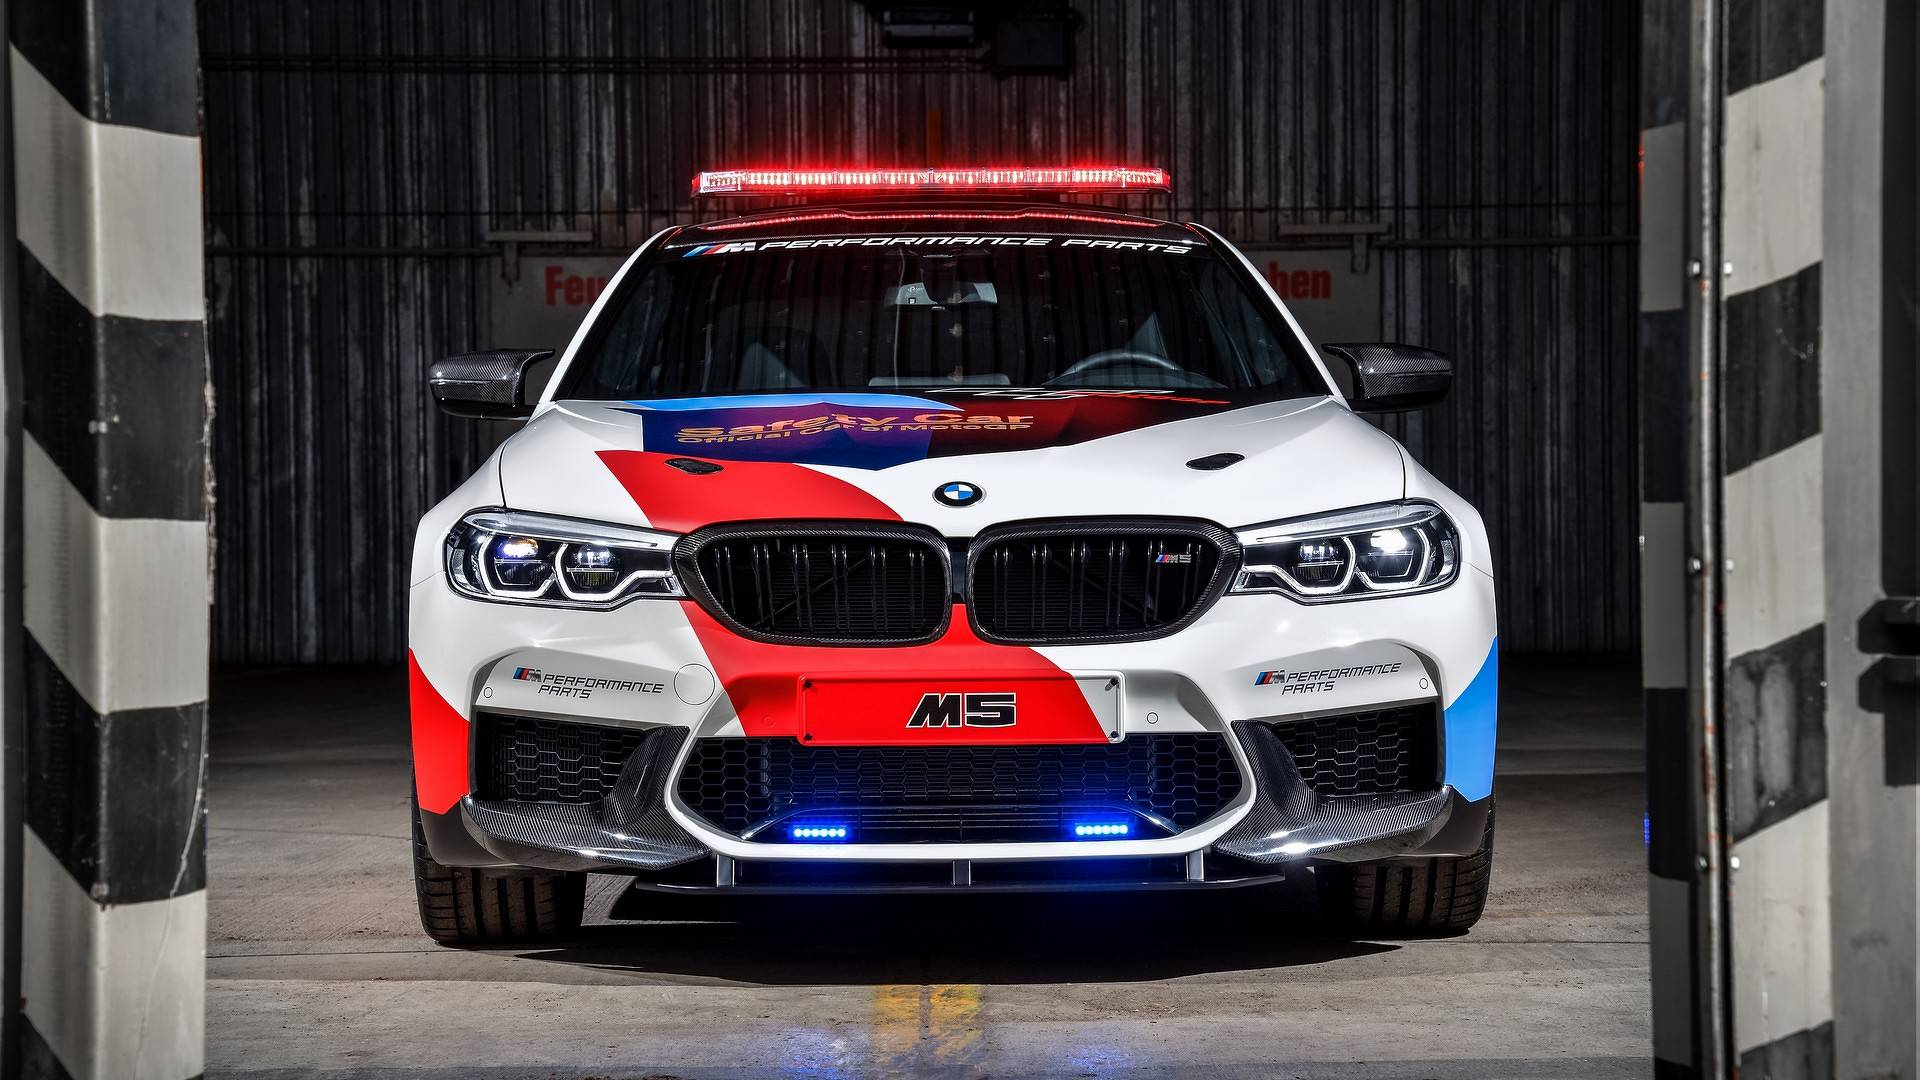 bmw-m5-motogp-safety-car (9)